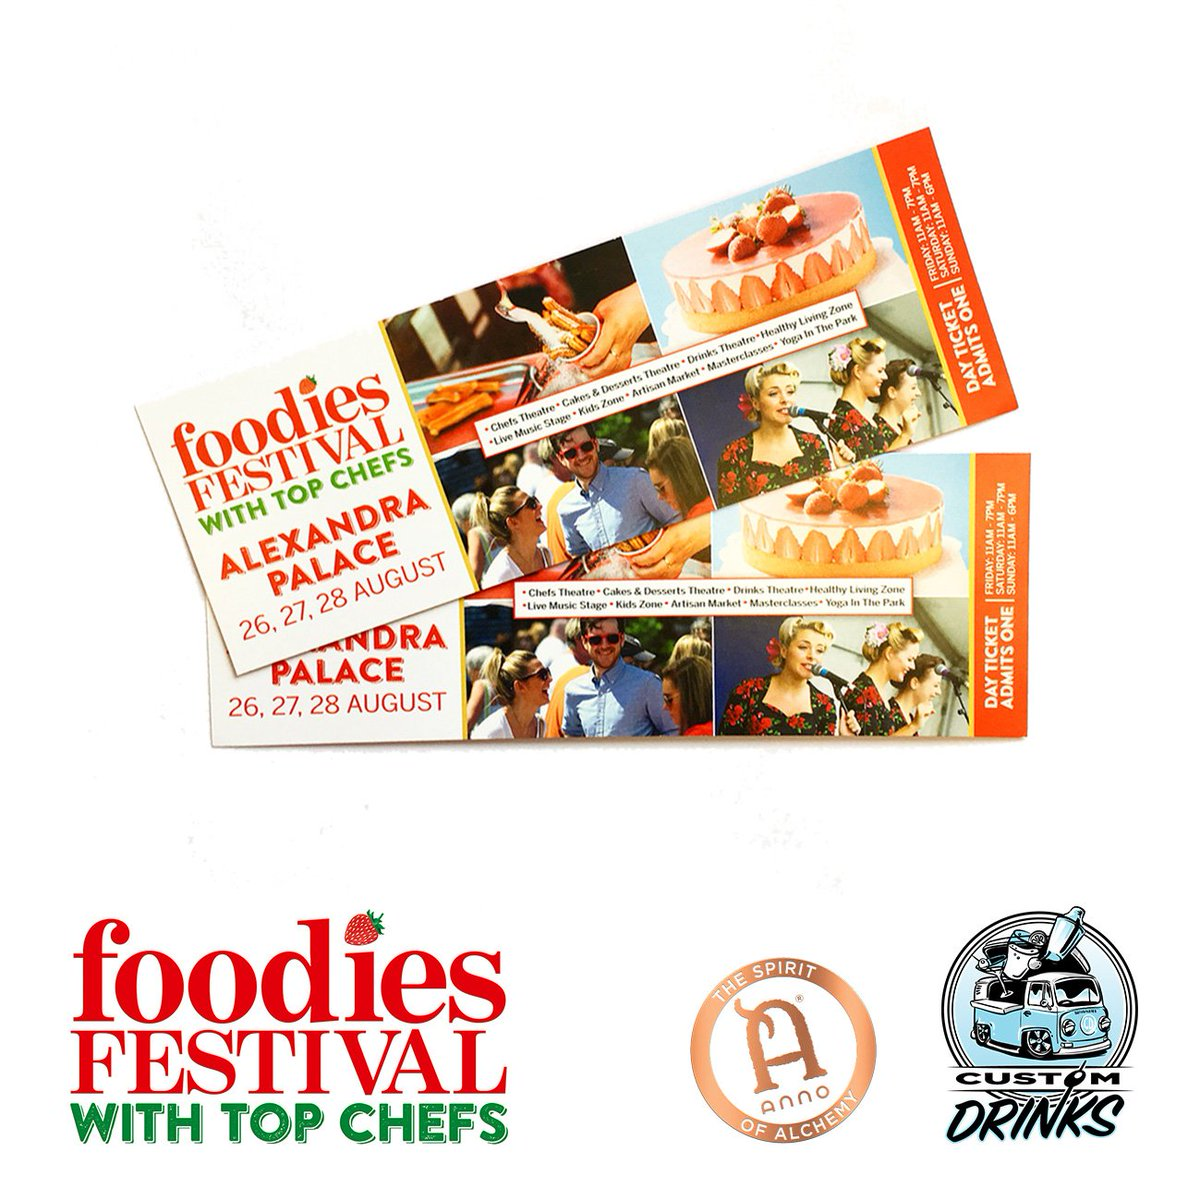 #Giveaway! A pair of tickets for @foodiesfestival next weekend! follow us and @custom_drinks then RT to enter! #bankholiday #win #foodies<br>http://pic.twitter.com/5L36Mqmys4